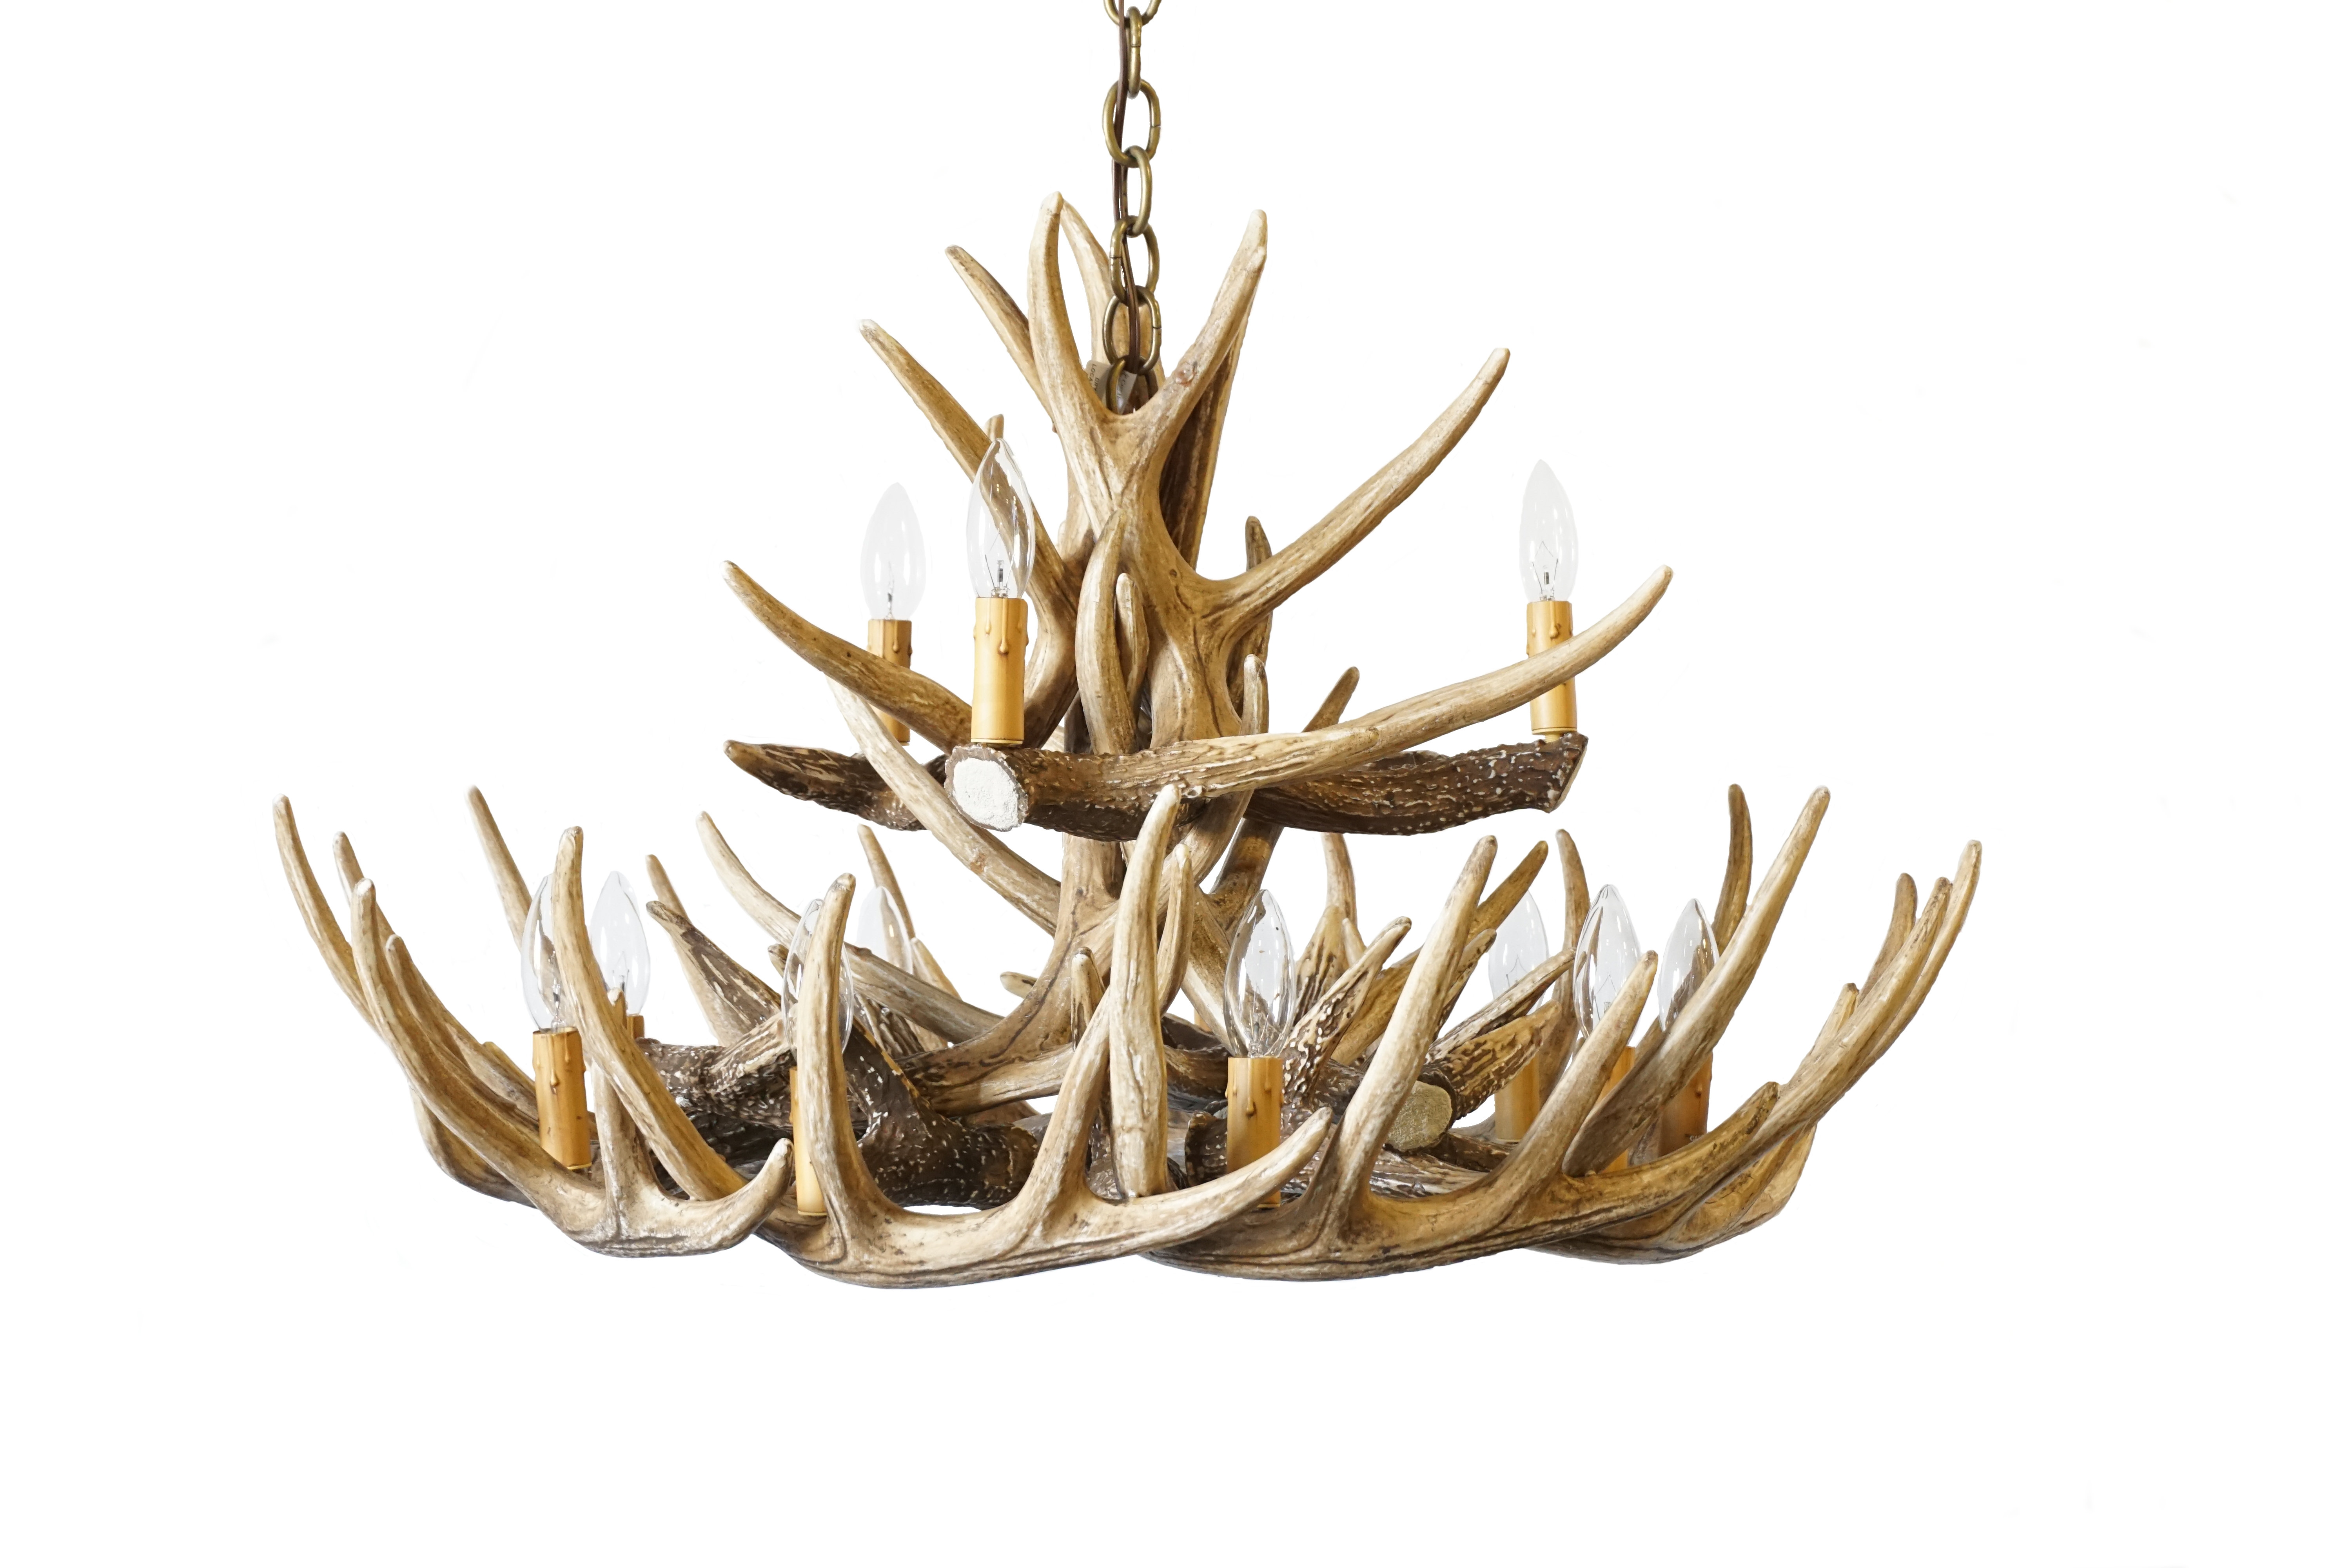 Antler Chandeliers Cast Horn Designs In Antler Chandelier (View 6 of 15)